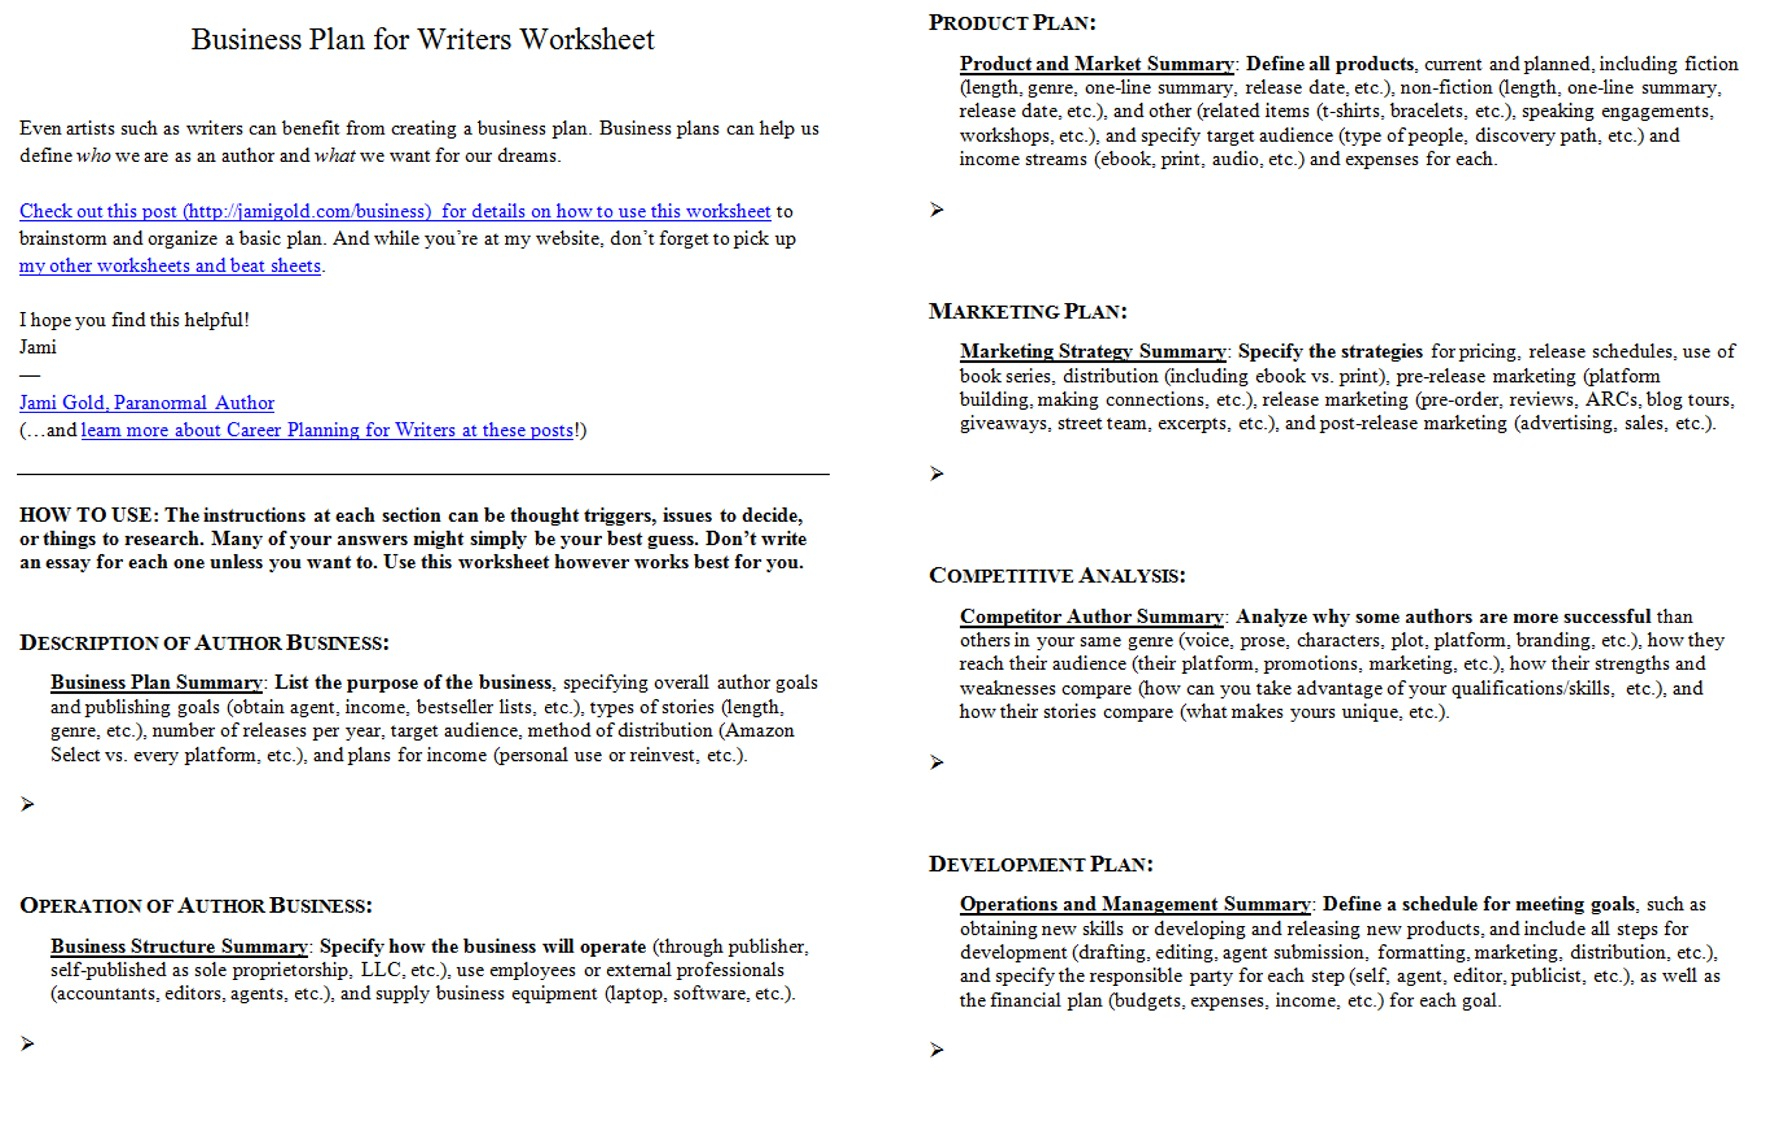 Weirdmailus  Marvelous Worksheets For Writers  Jami Gold Paranormal Author With Handsome Screen Shot Of Both Pages Of The Business Plan For Writers Worksheet With Divine Third Grade Multiplication Word Problems Worksheets Also Adding By  Worksheet In Addition Worksheets For Grade  English Grammar And English Skills Worksheets As Well As Poetry Worksheets For Th Grade Additionally Long Division And Multiplication Worksheets From Jamigoldcom With Weirdmailus  Handsome Worksheets For Writers  Jami Gold Paranormal Author With Divine Screen Shot Of Both Pages Of The Business Plan For Writers Worksheet And Marvelous Third Grade Multiplication Word Problems Worksheets Also Adding By  Worksheet In Addition Worksheets For Grade  English Grammar From Jamigoldcom